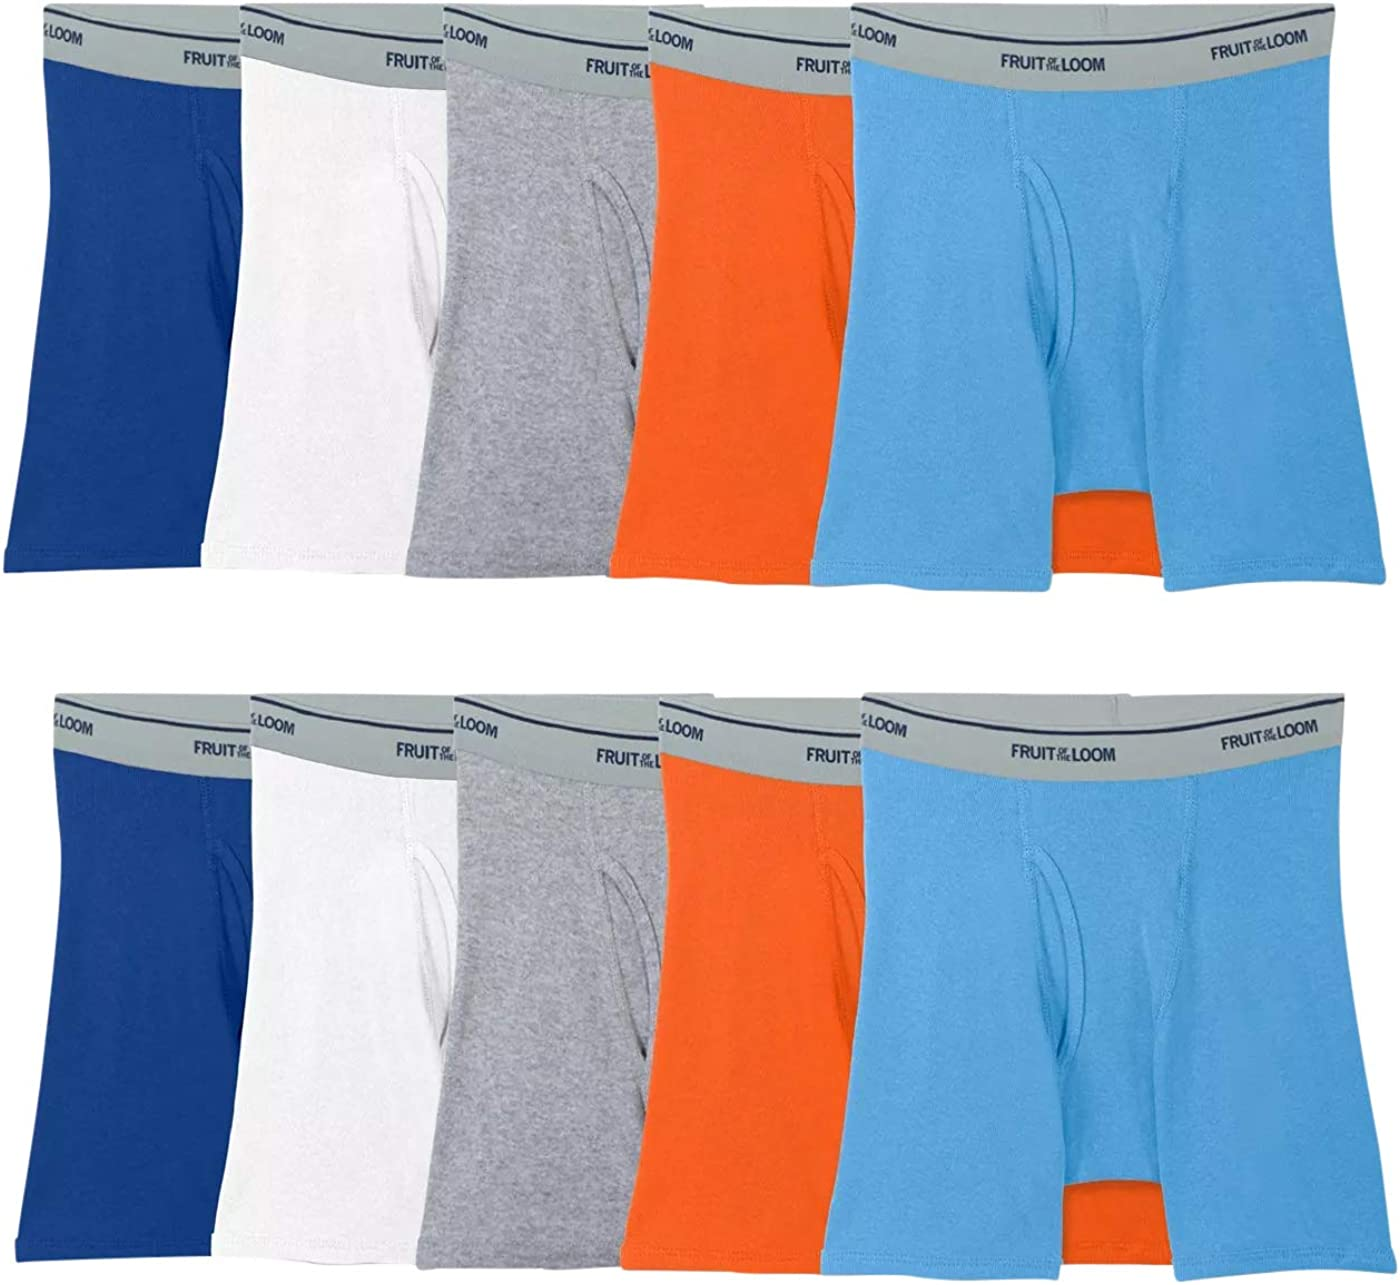 Fruit of the Loom Boys Max 54% OFF Cotton Brief Complete Free Shipping Boxer Underwear